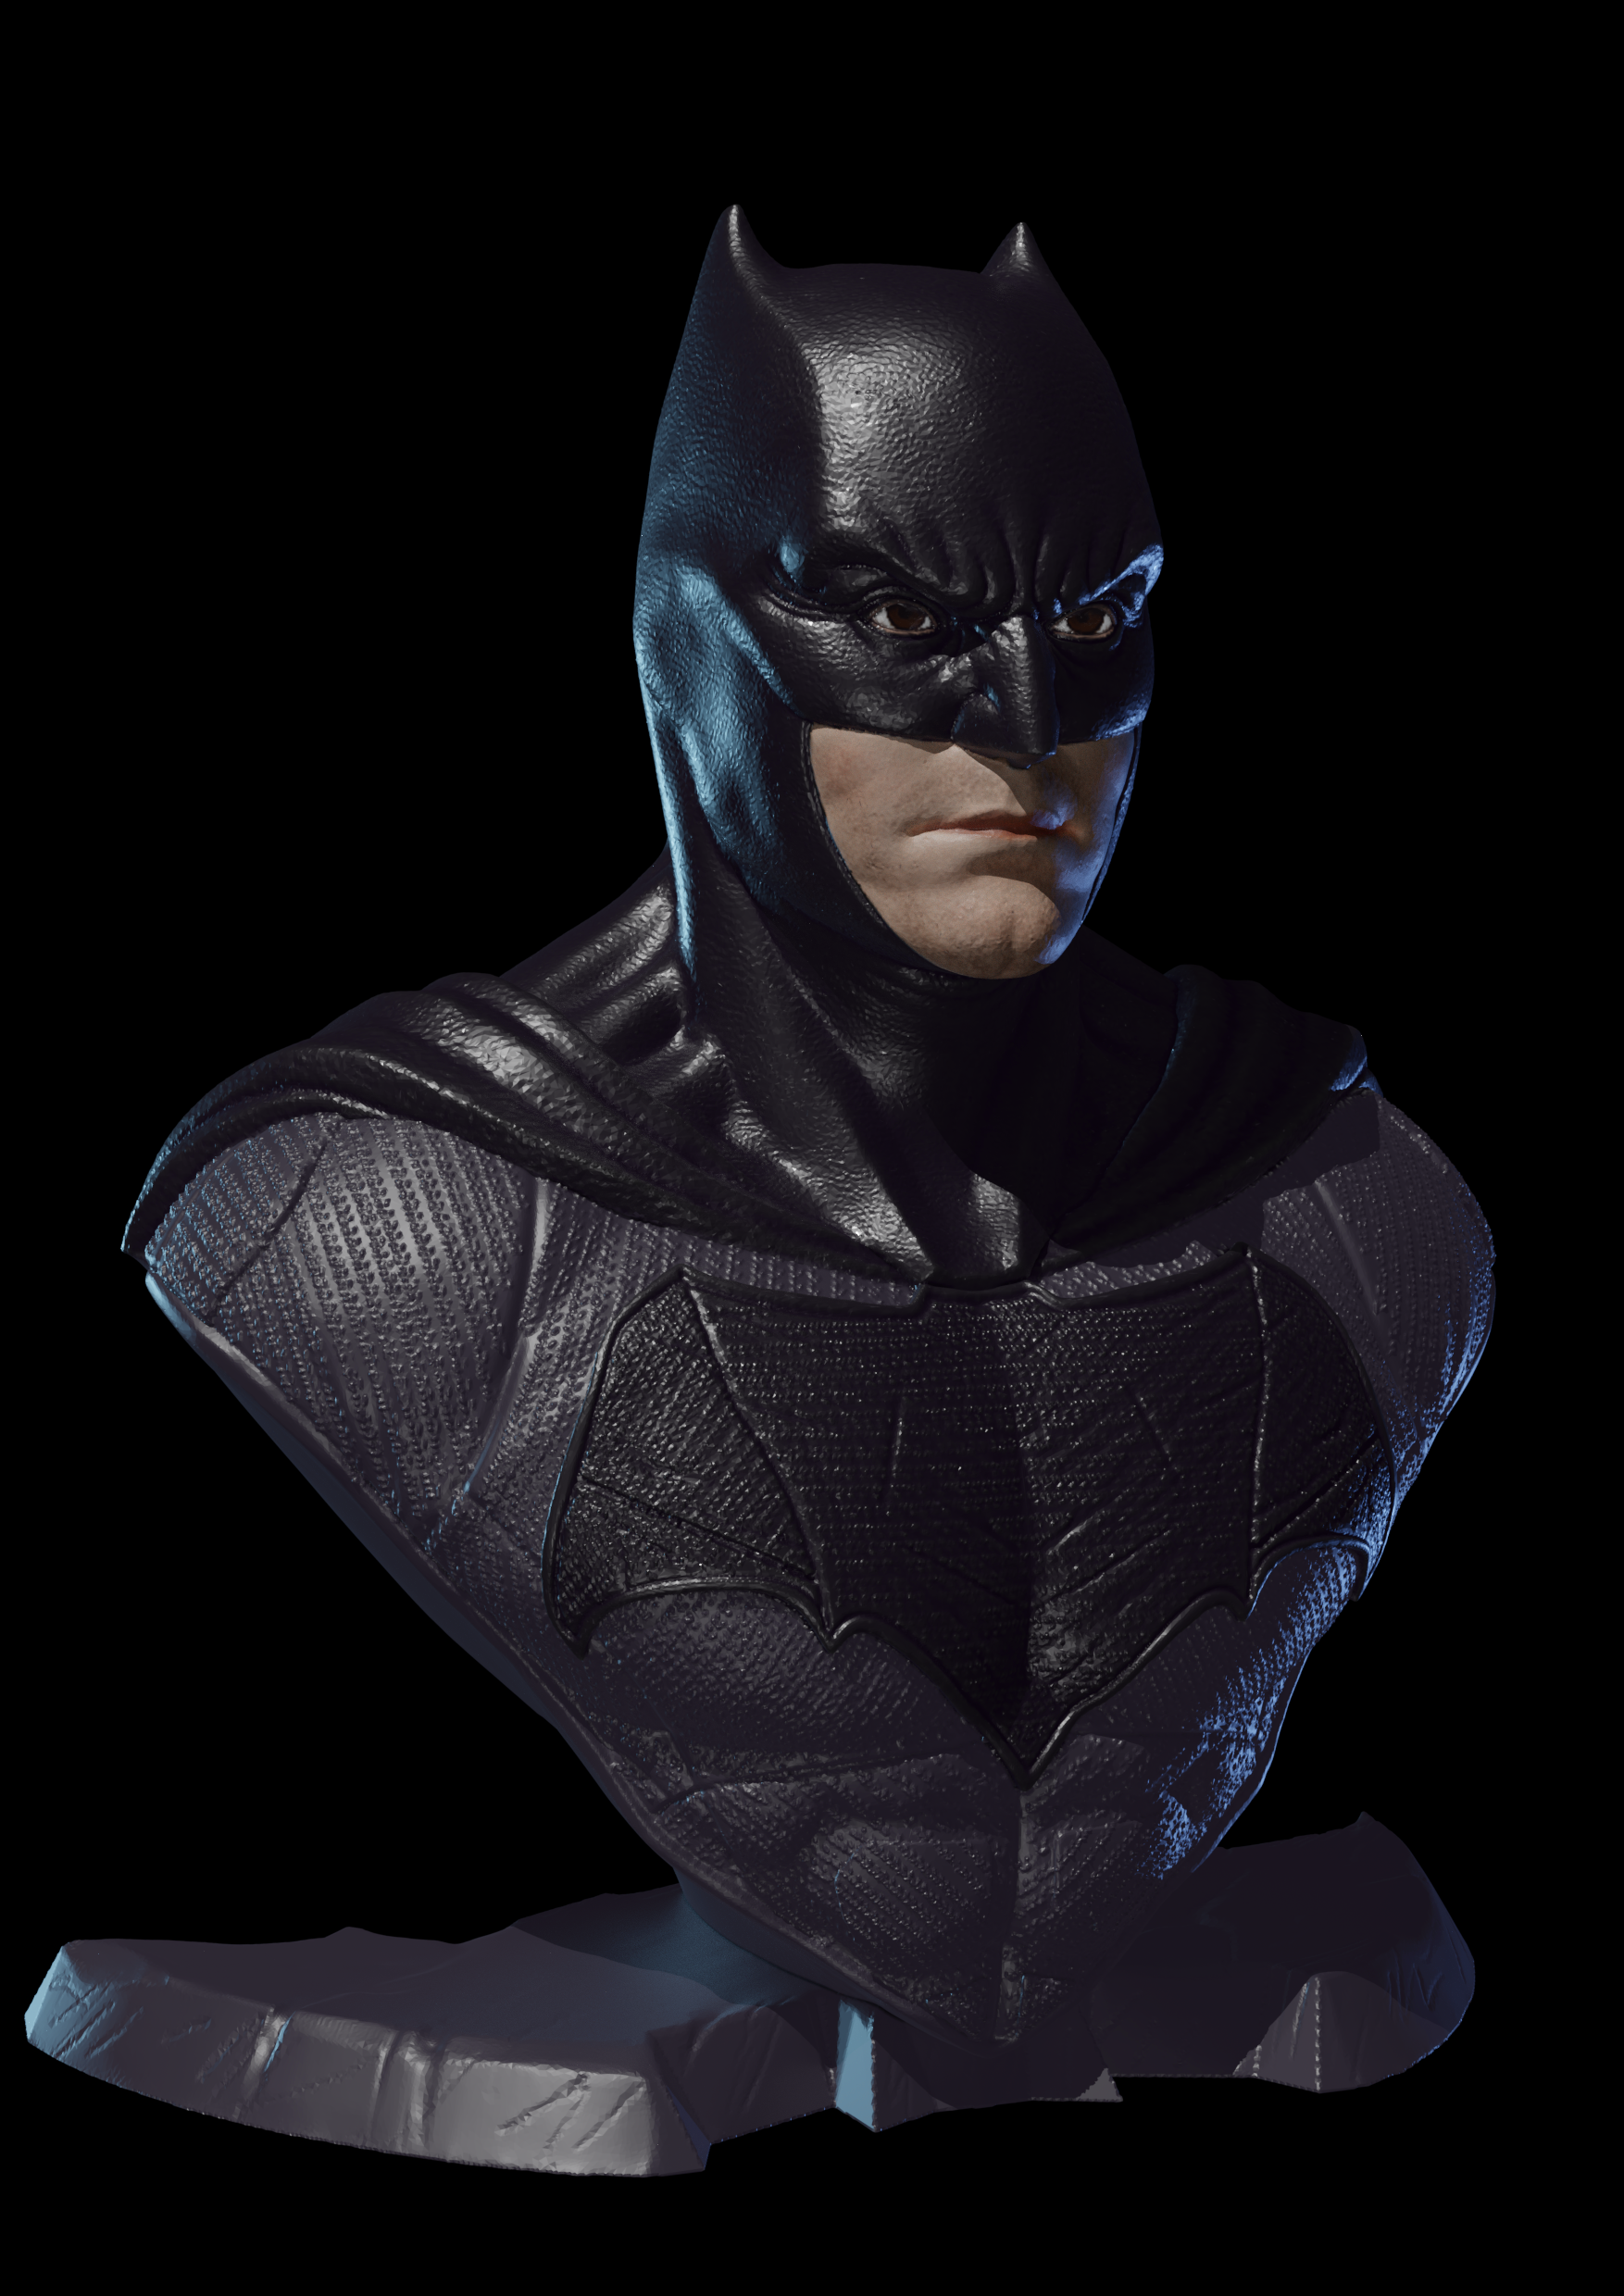 Face-A.png Download free STL file Batman Justice League • 3D printer model, IdeaMutante